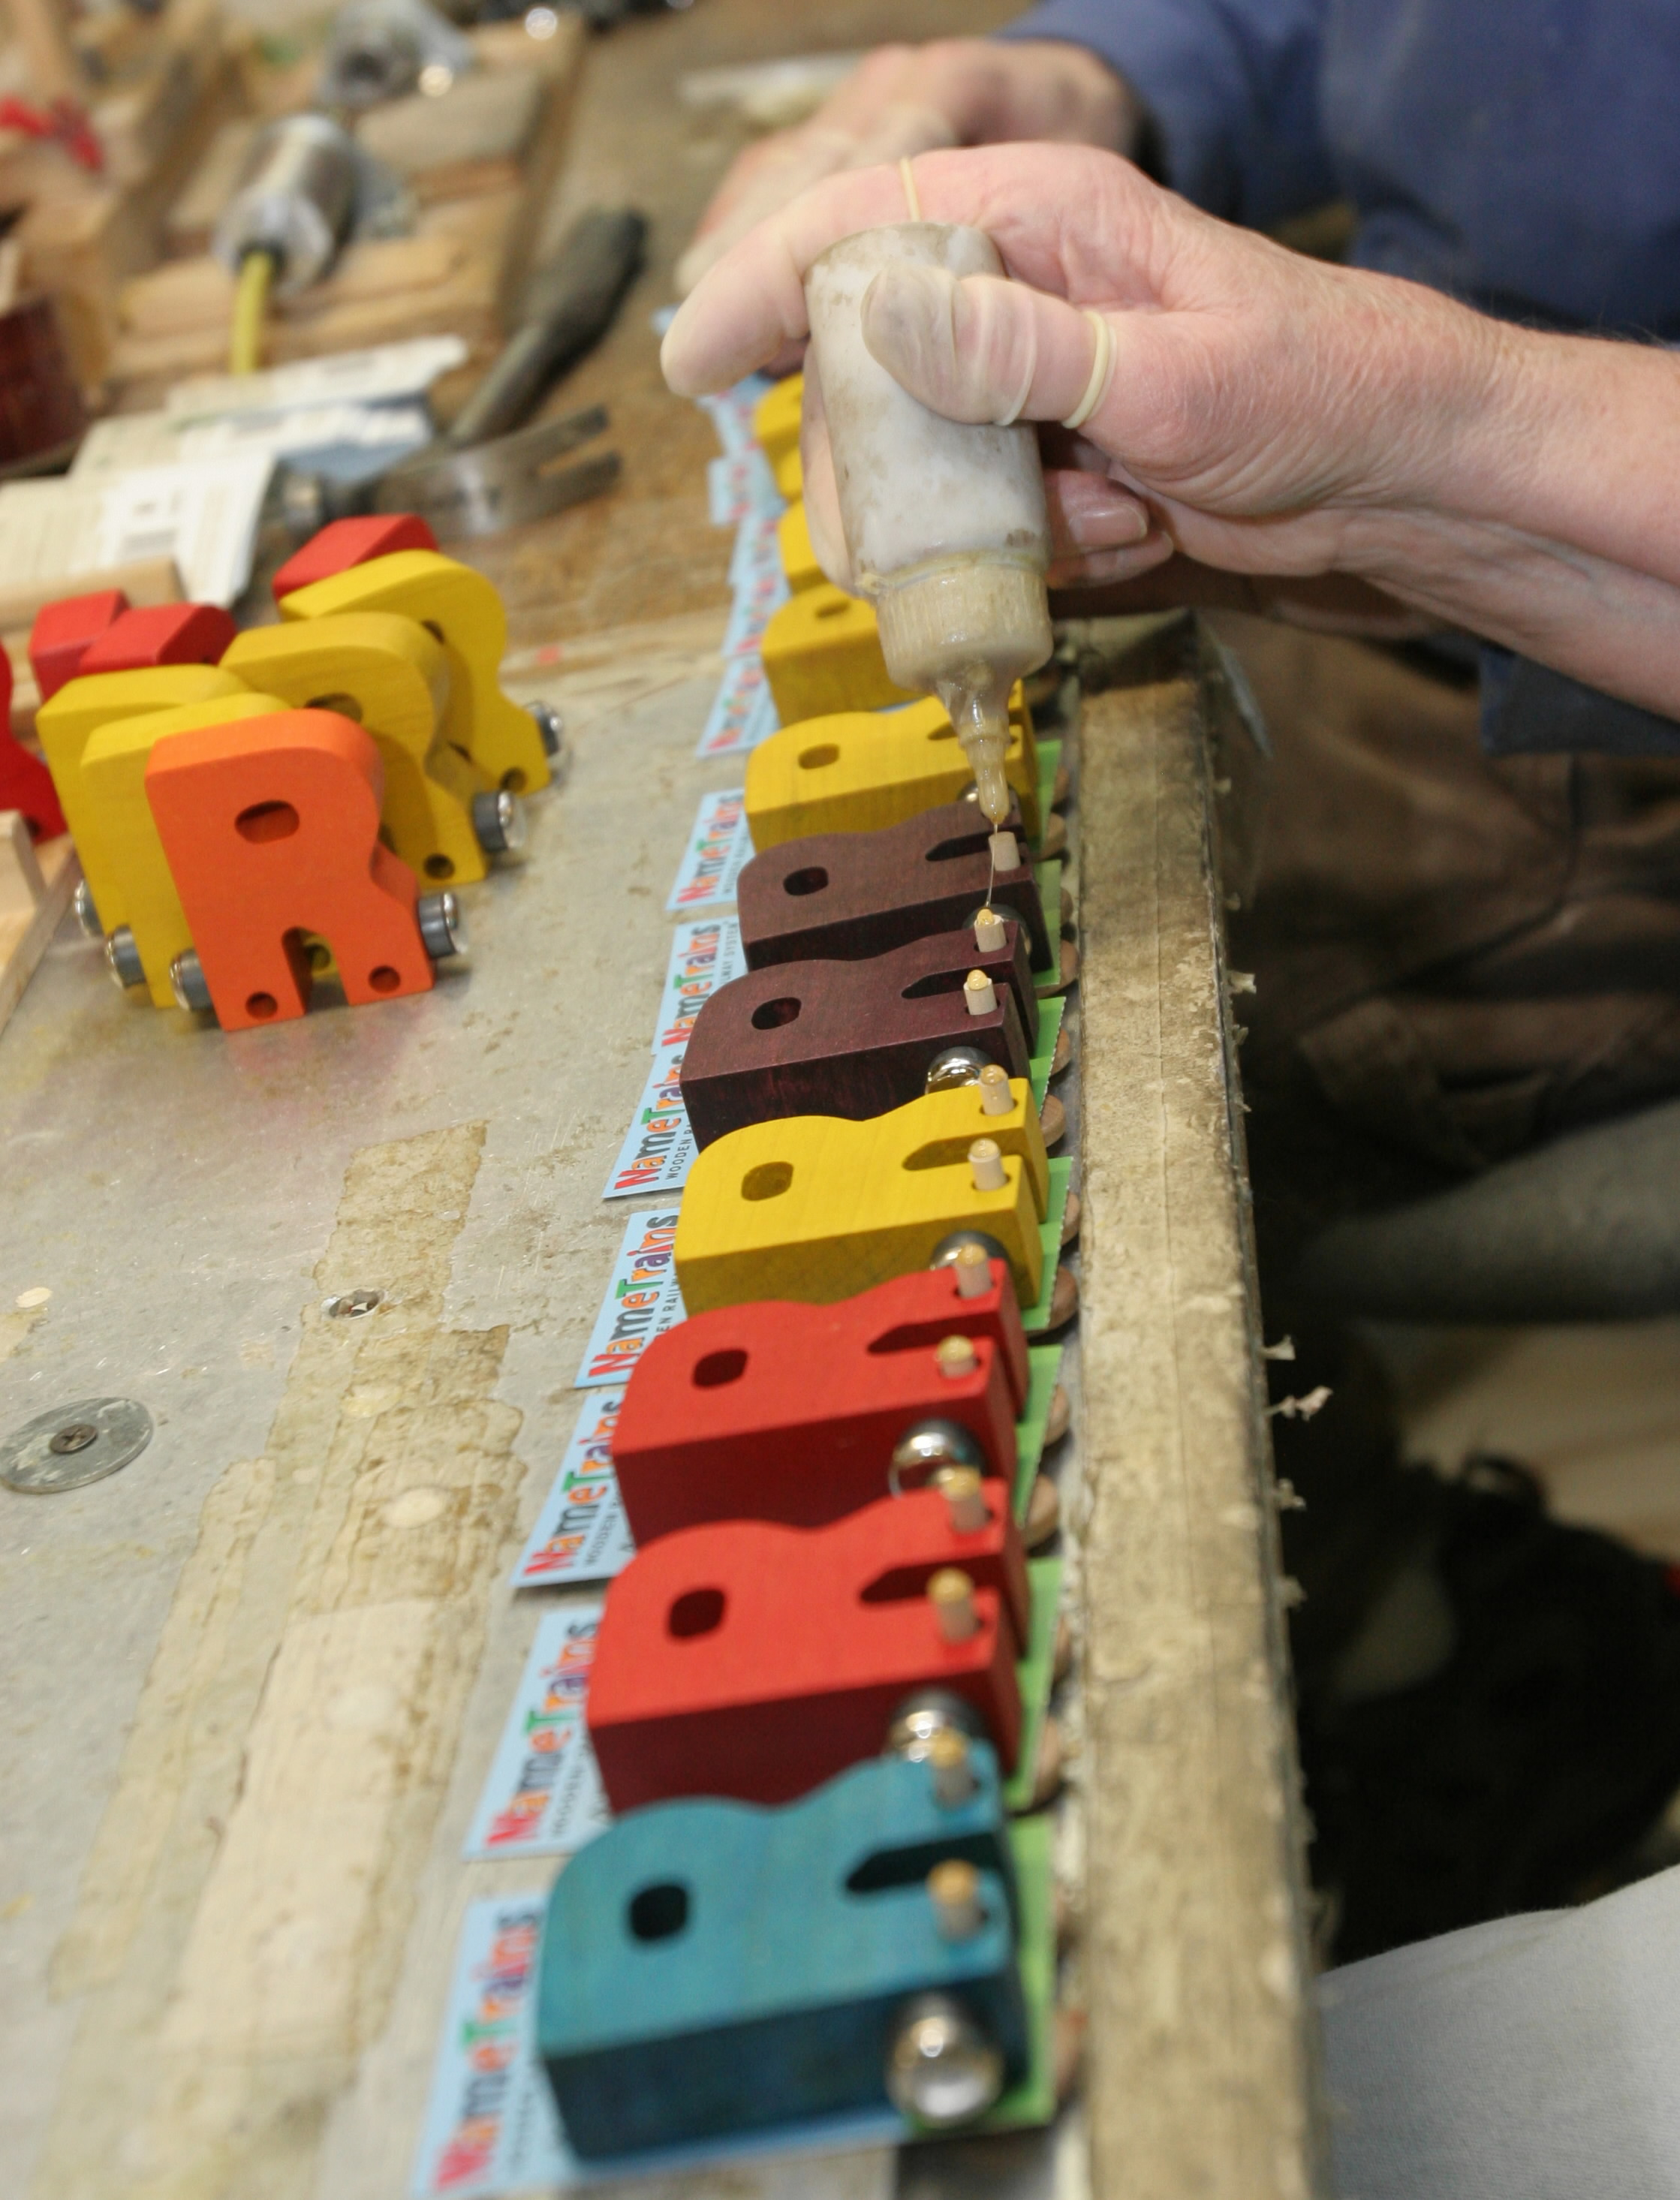 Maple Landmark, whose business is booming after the China scare, uses nontoxic materials in its wooden toys - everything from trains to school buses....